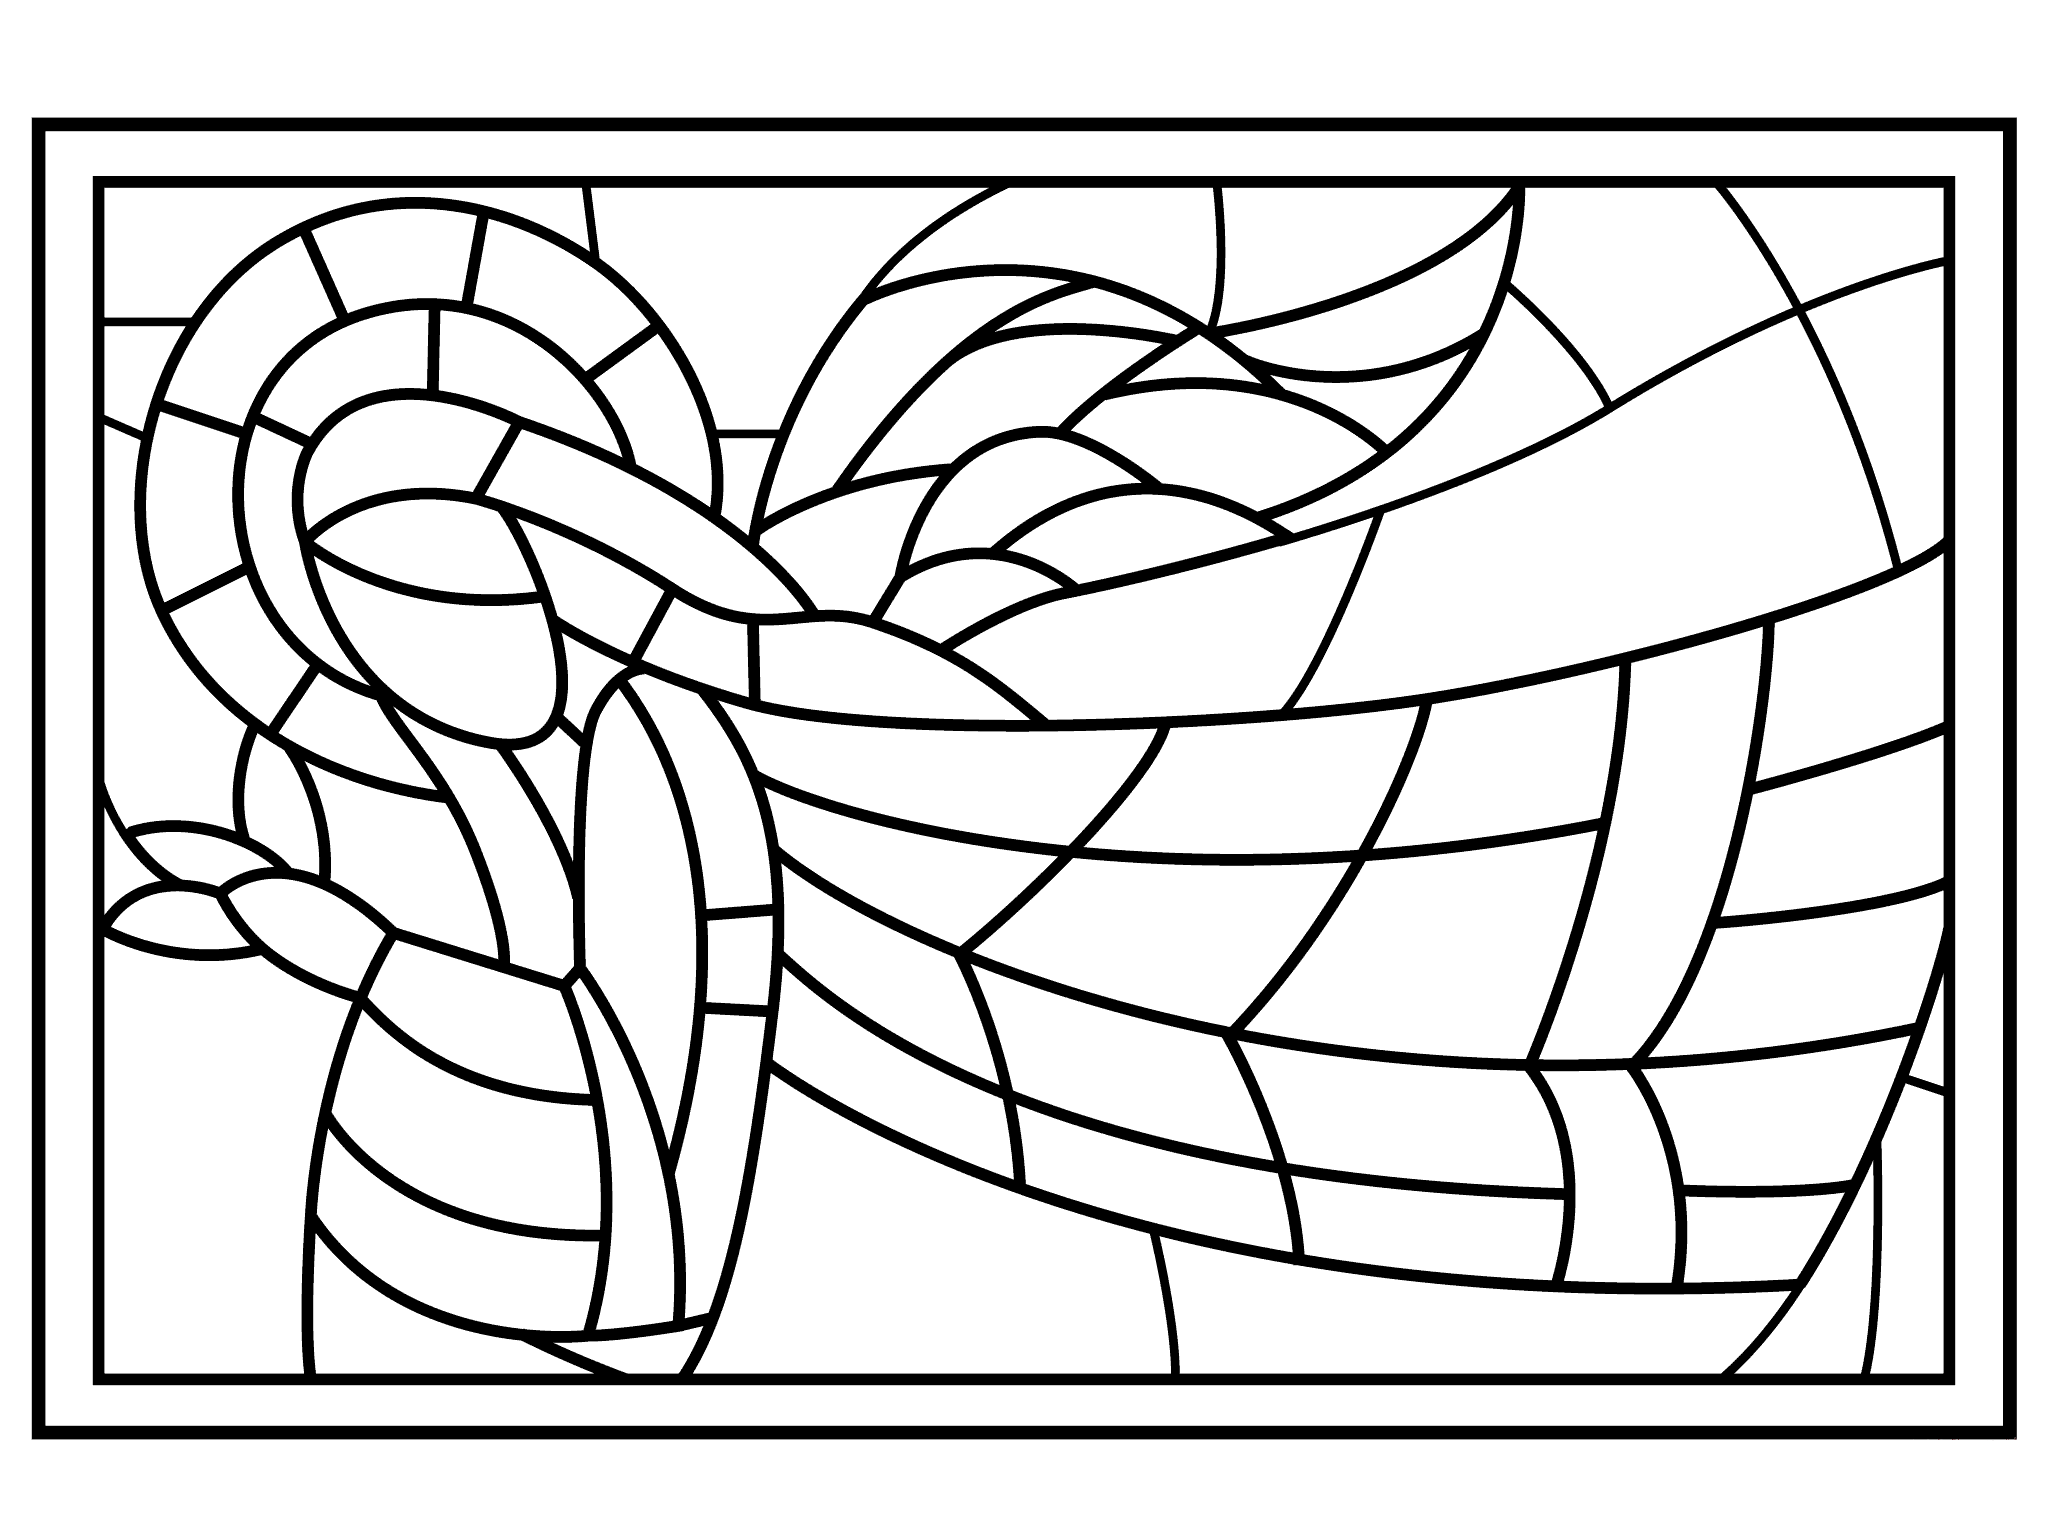 Stained Glass Coloring Pages for Adults - Best Coloring ...